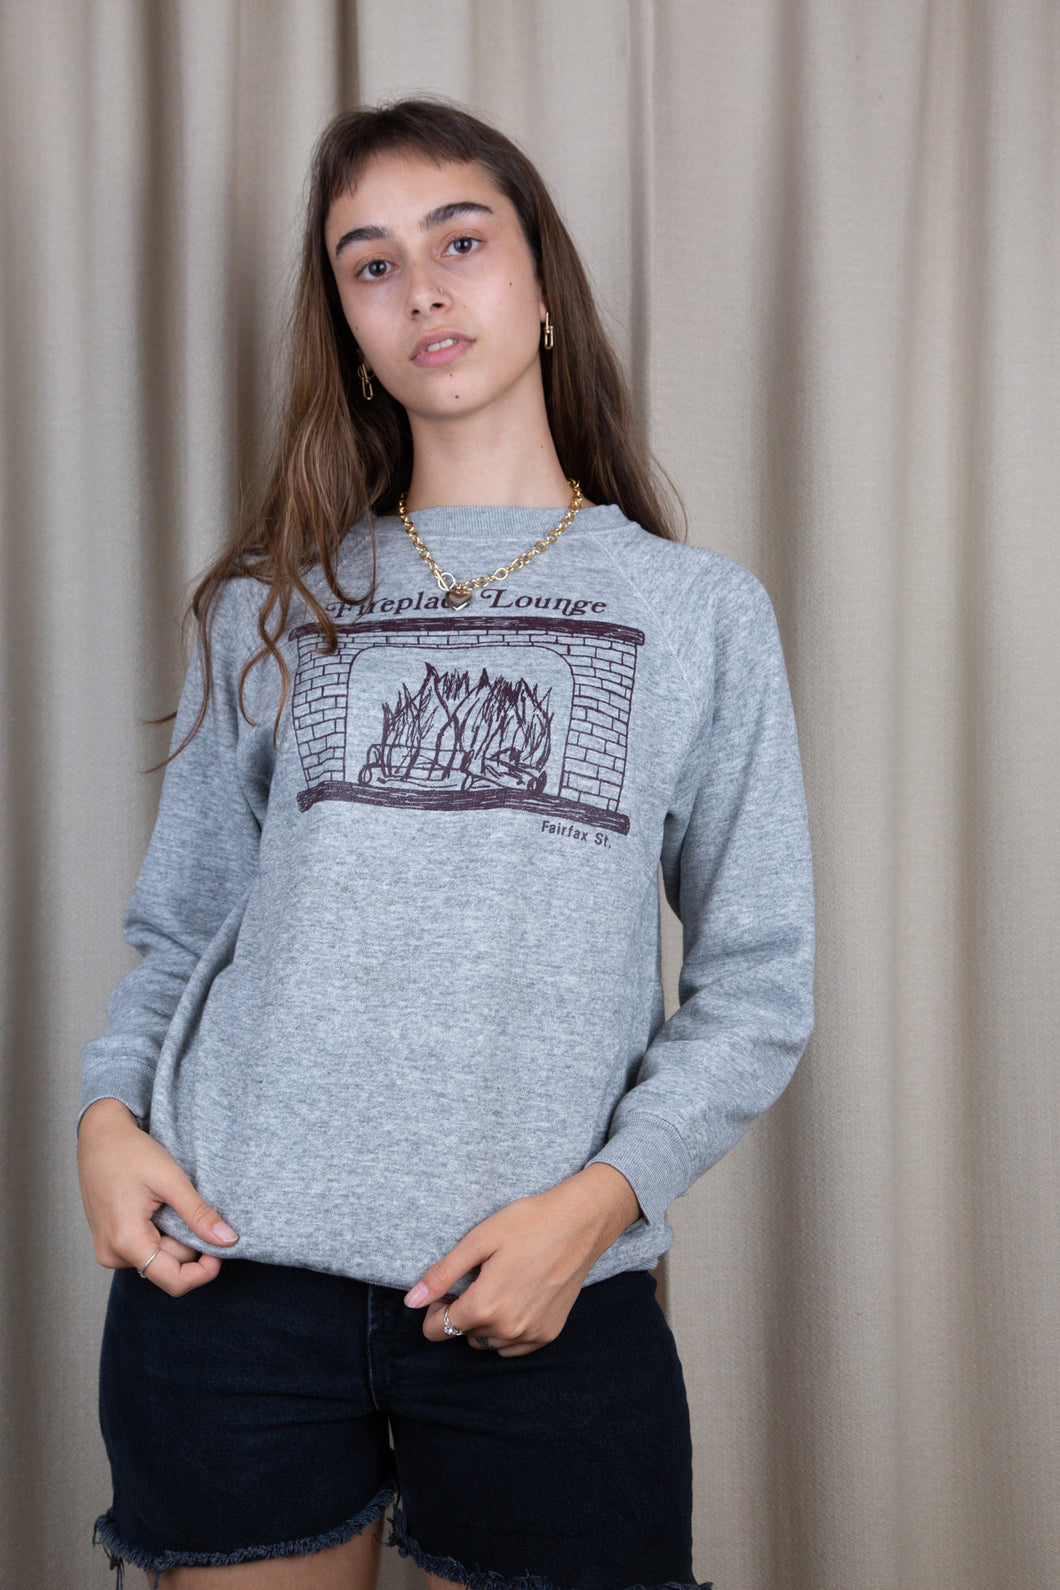 the model wears a grey sweater with a fireplace lounge graphic